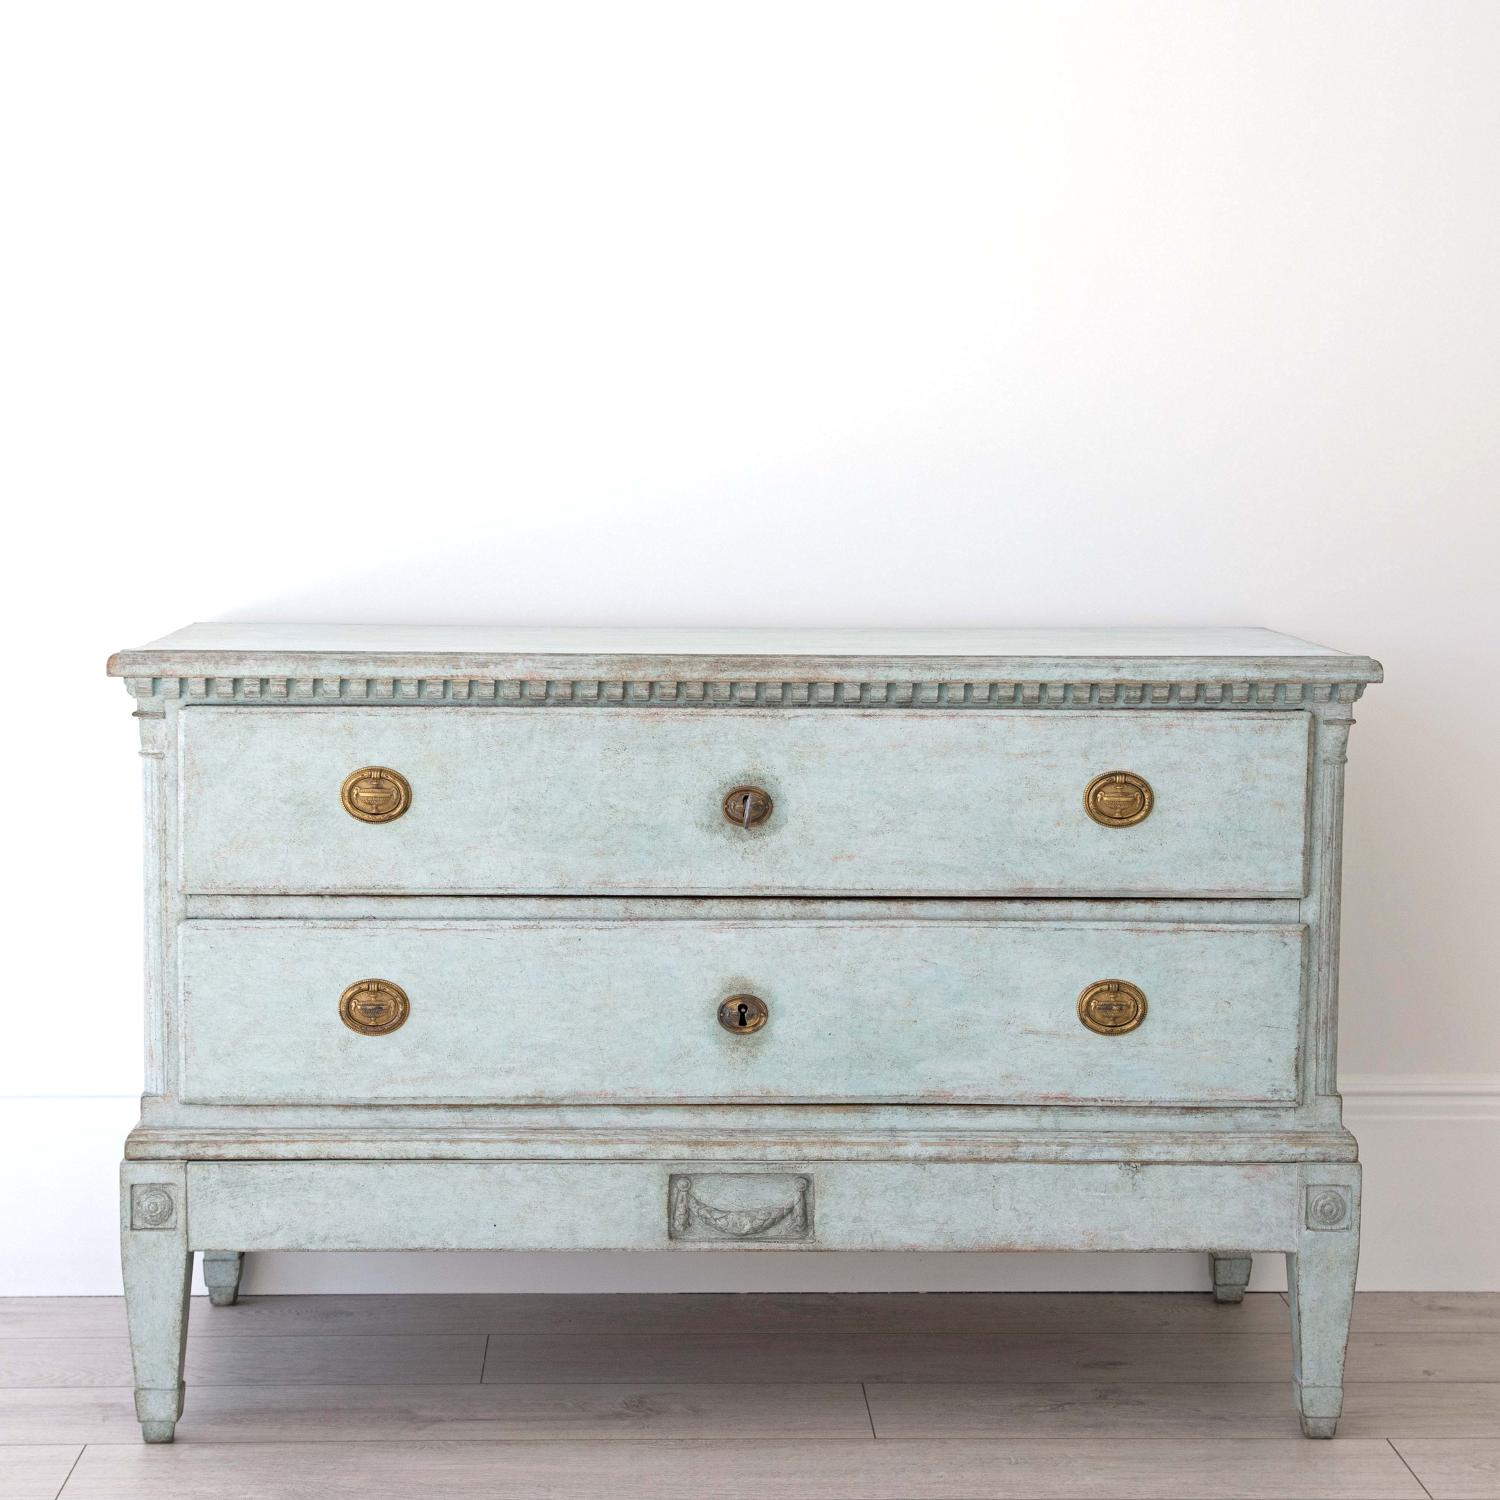 BEAUTIFUL PALE BLUE DANISH GUSTAVIAN PERIOD CHEST